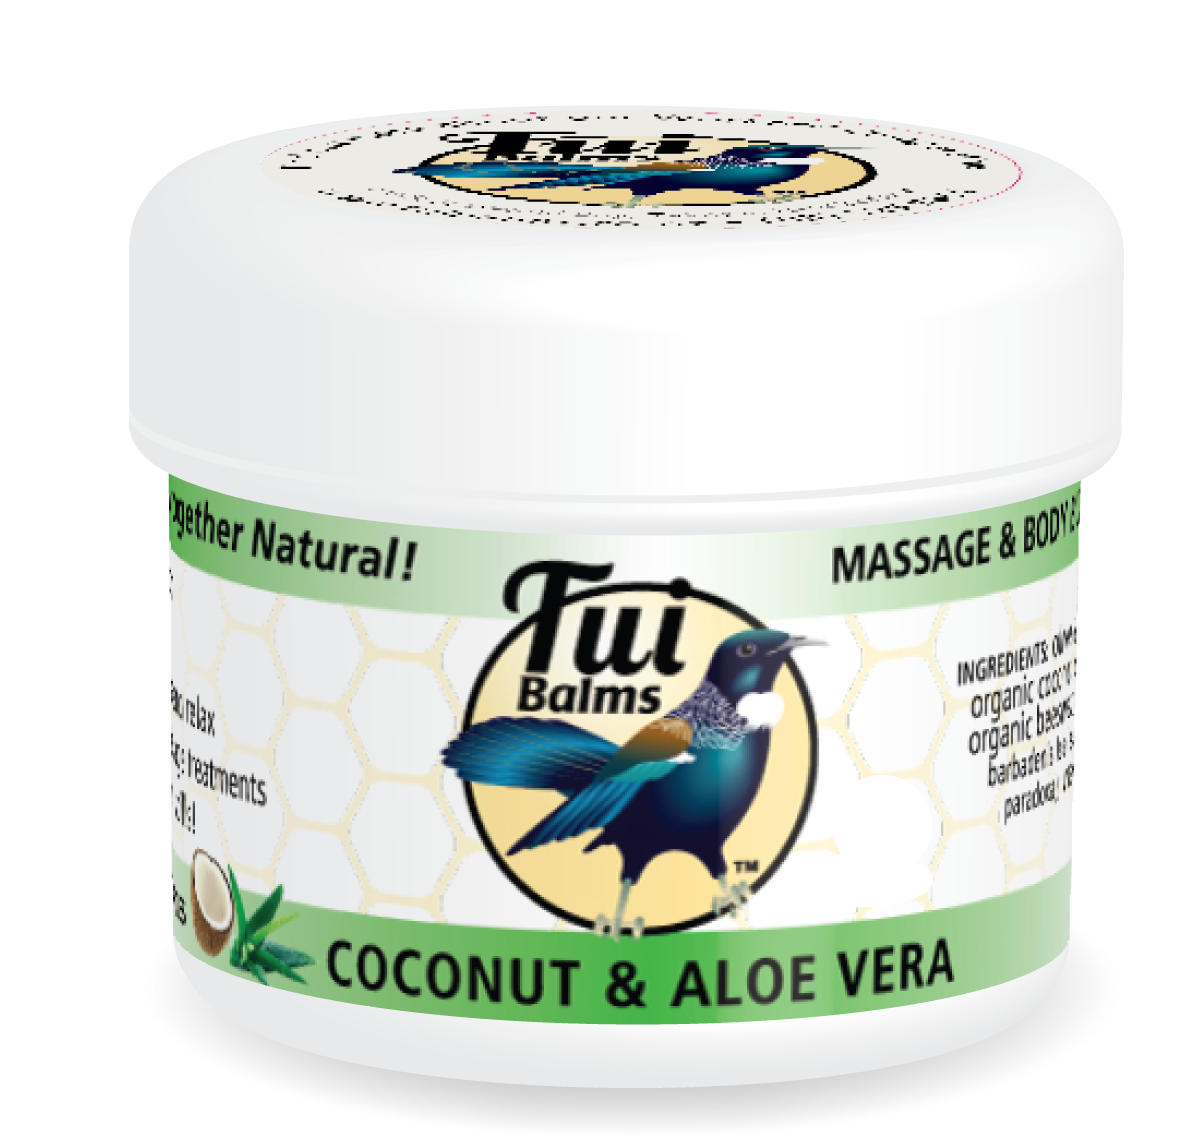 Massage & Body Butter COCONUT & ALOE VERA